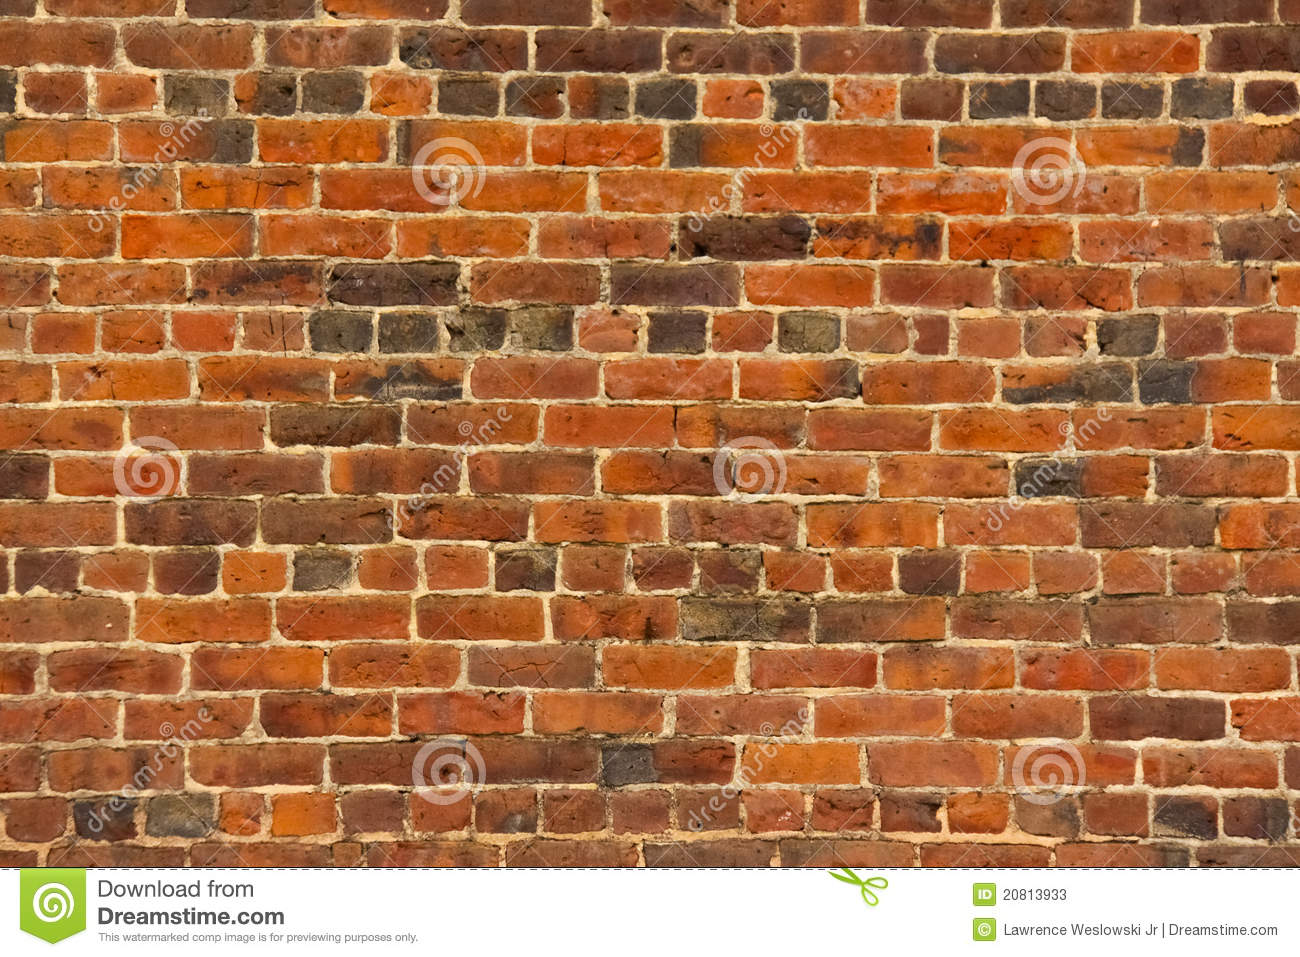 Download Old Red Brick Wall With Lots Of Texture And Color Stock Image - Image of detail, built: 20813933